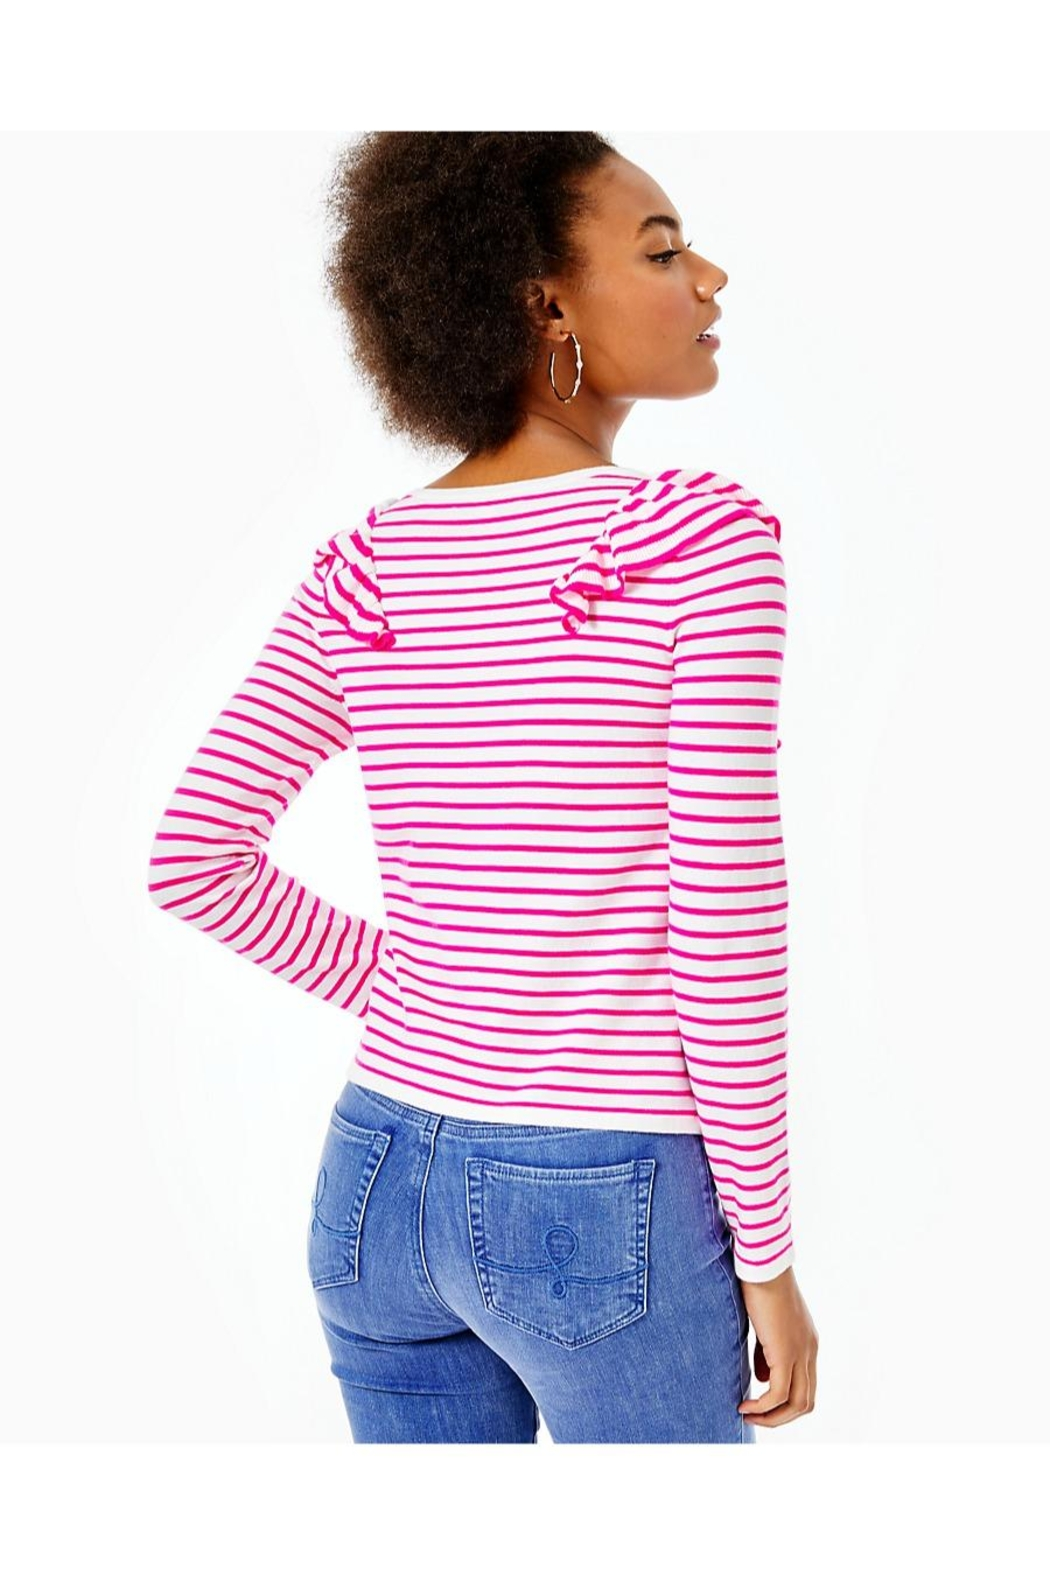 Lilly Pulitzer Ruth Striped Sweater - Front Full Image